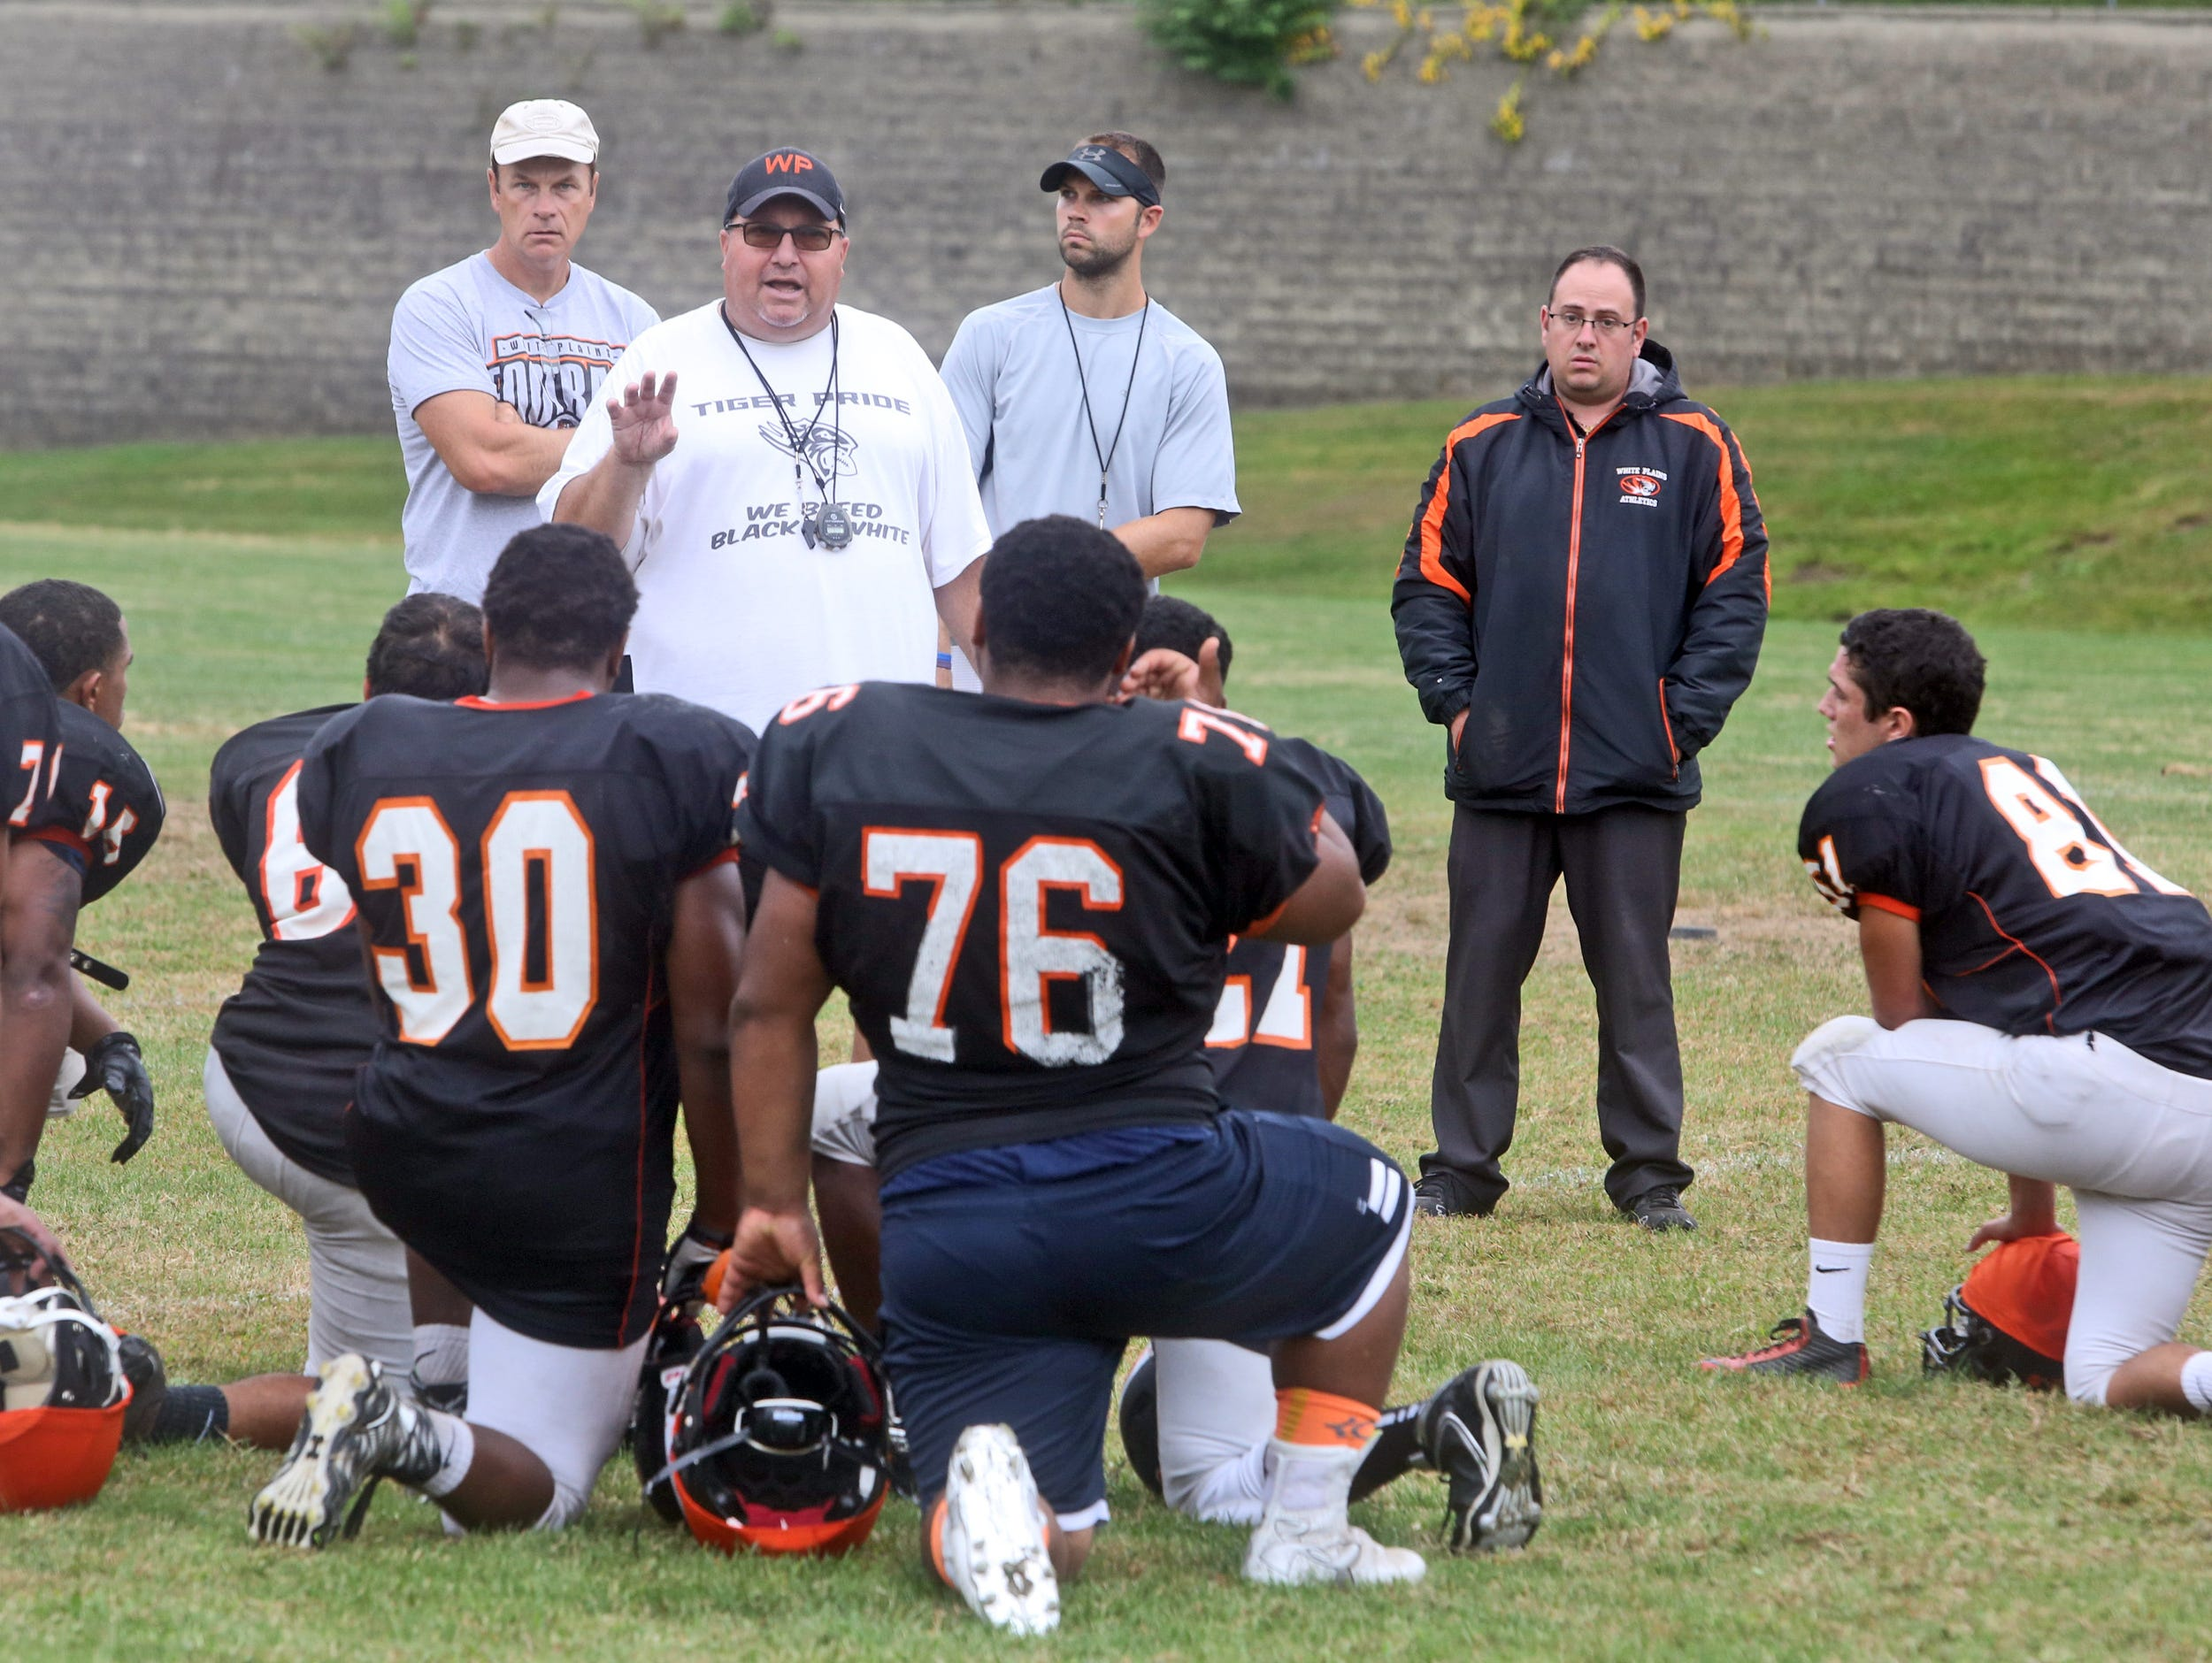 Mike Mirabella, the athletic trainer at White Plains High School, standing at right, looks in on varsity football practice Sept. 29, 2015.